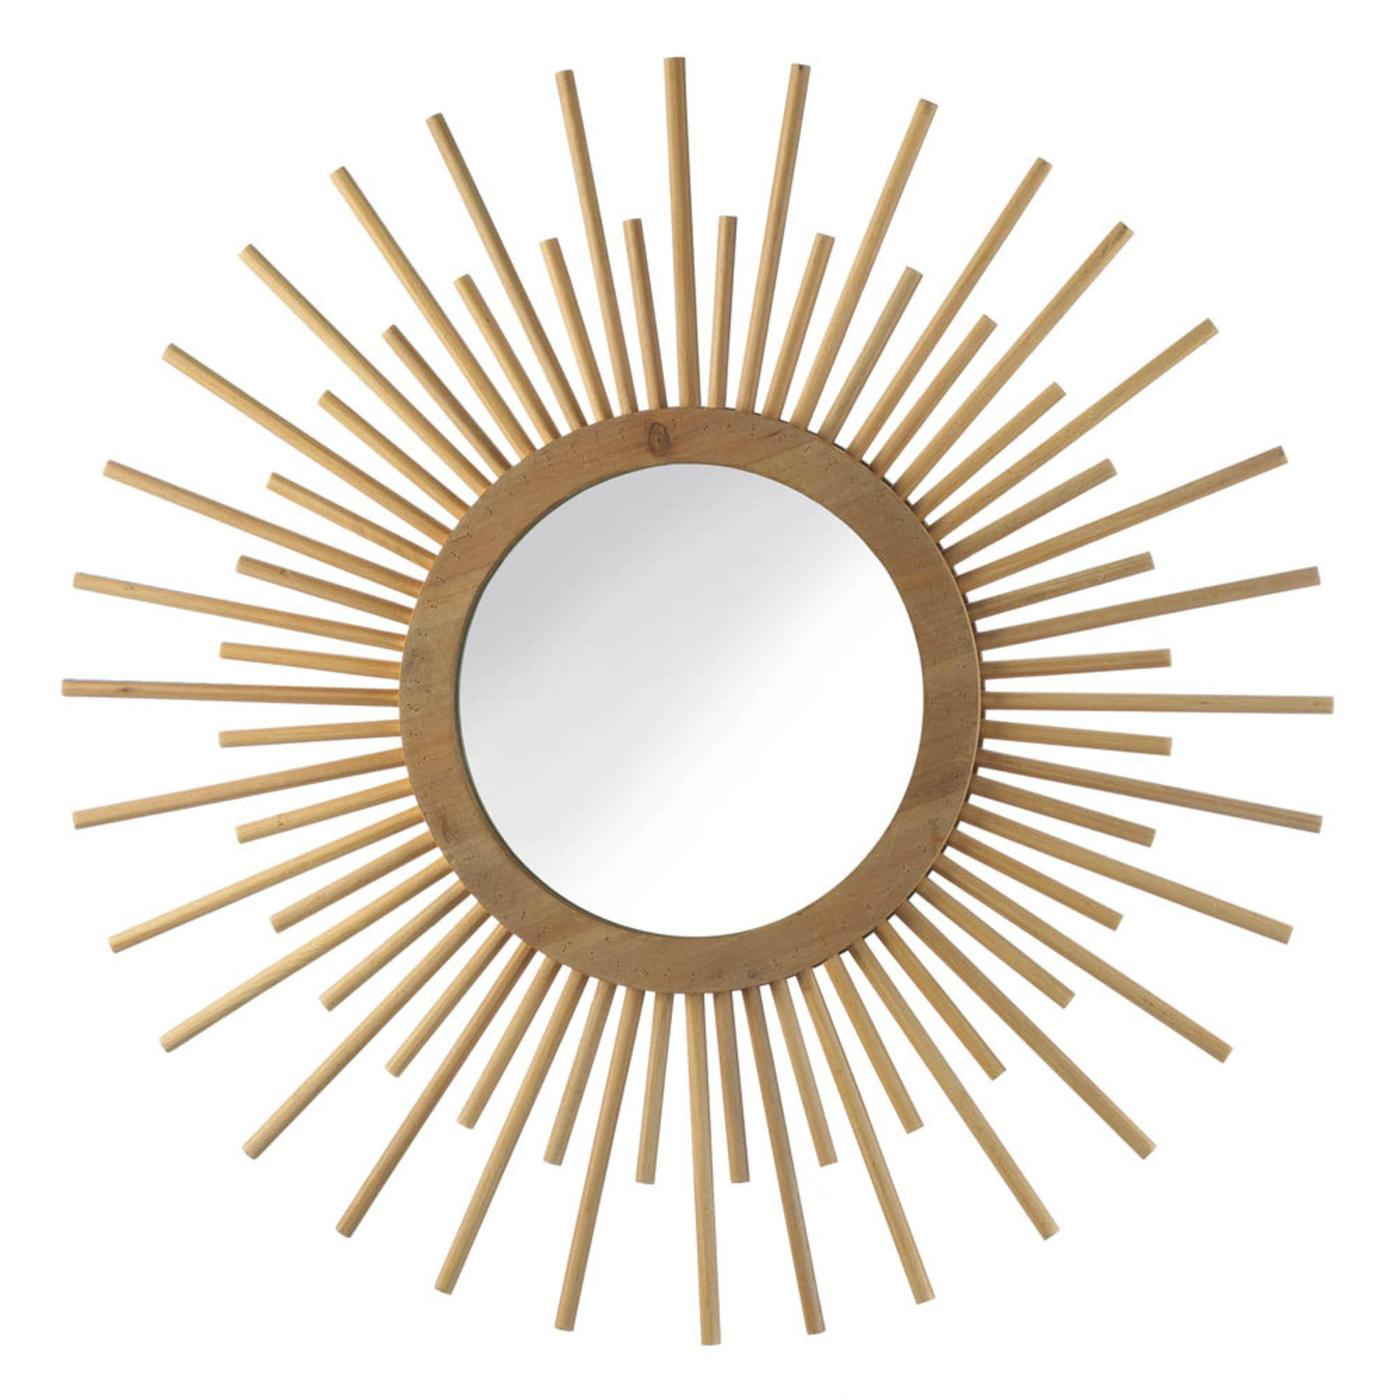 Wood Sunburst Mirror